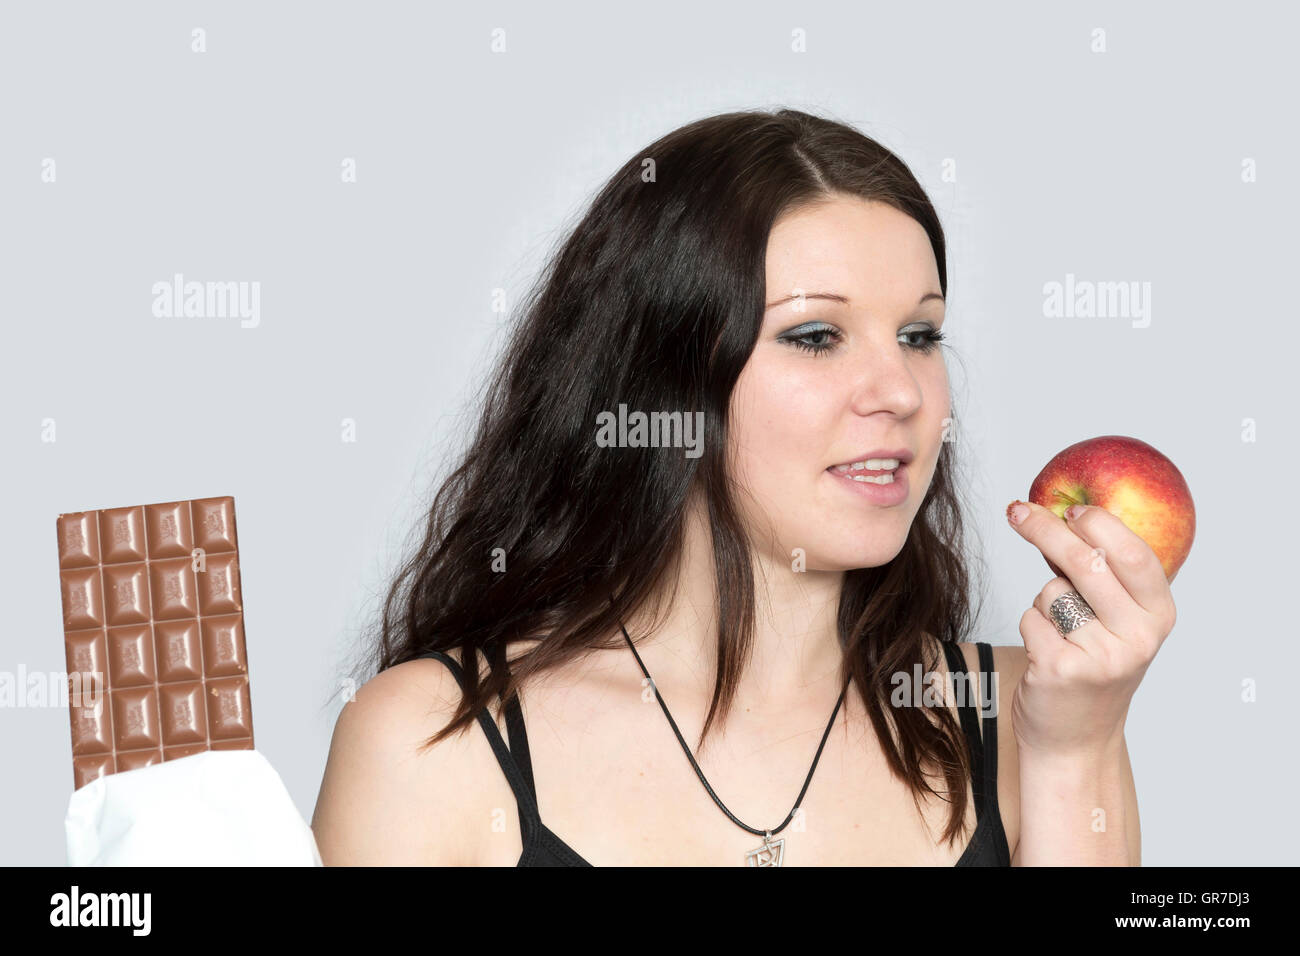 Woman Chooses Instead Of A Chocolate Bar Prefer An Apple - Stock Image